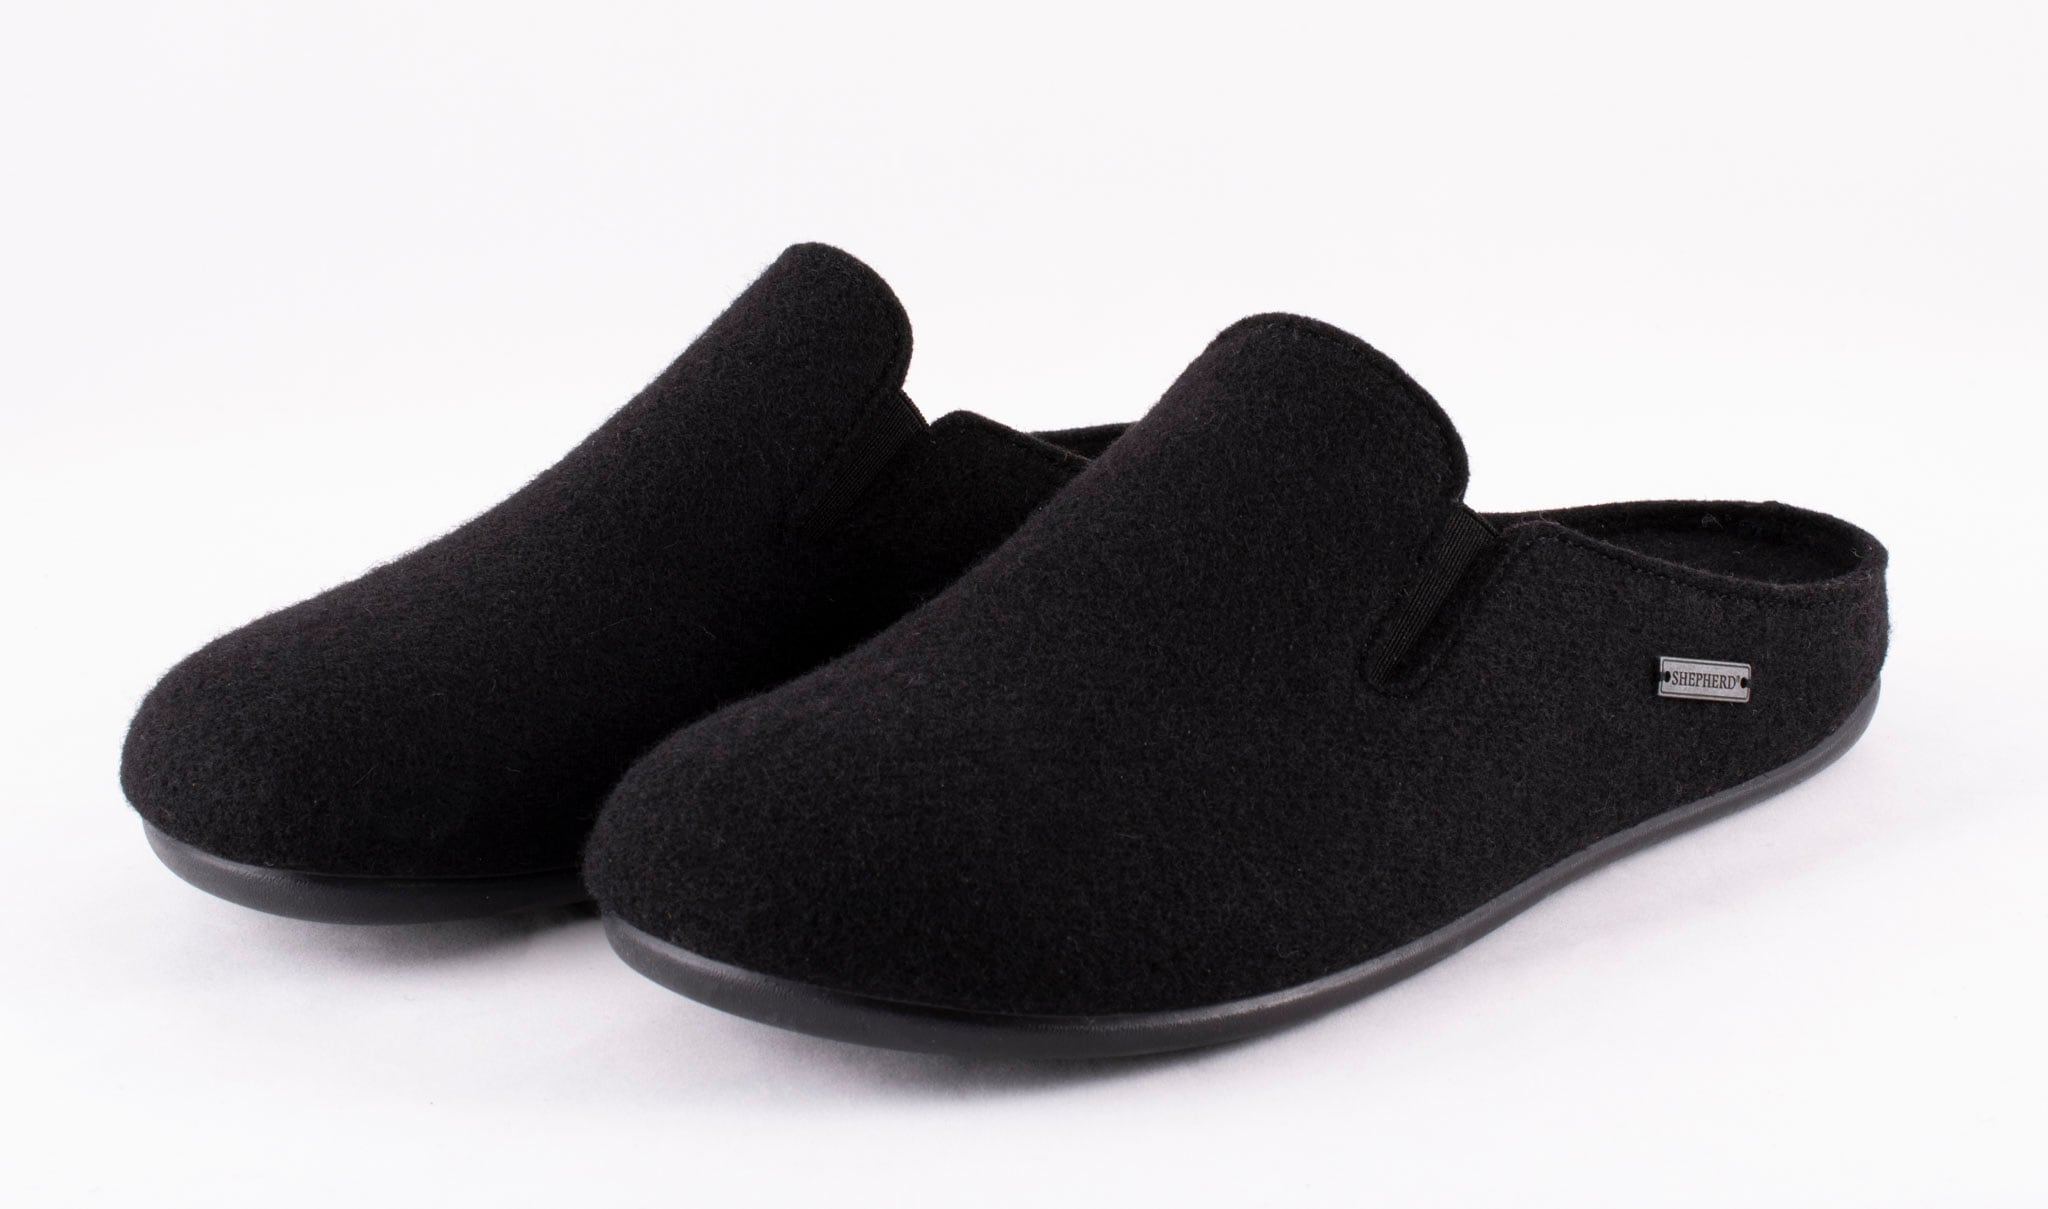 Marre slippers